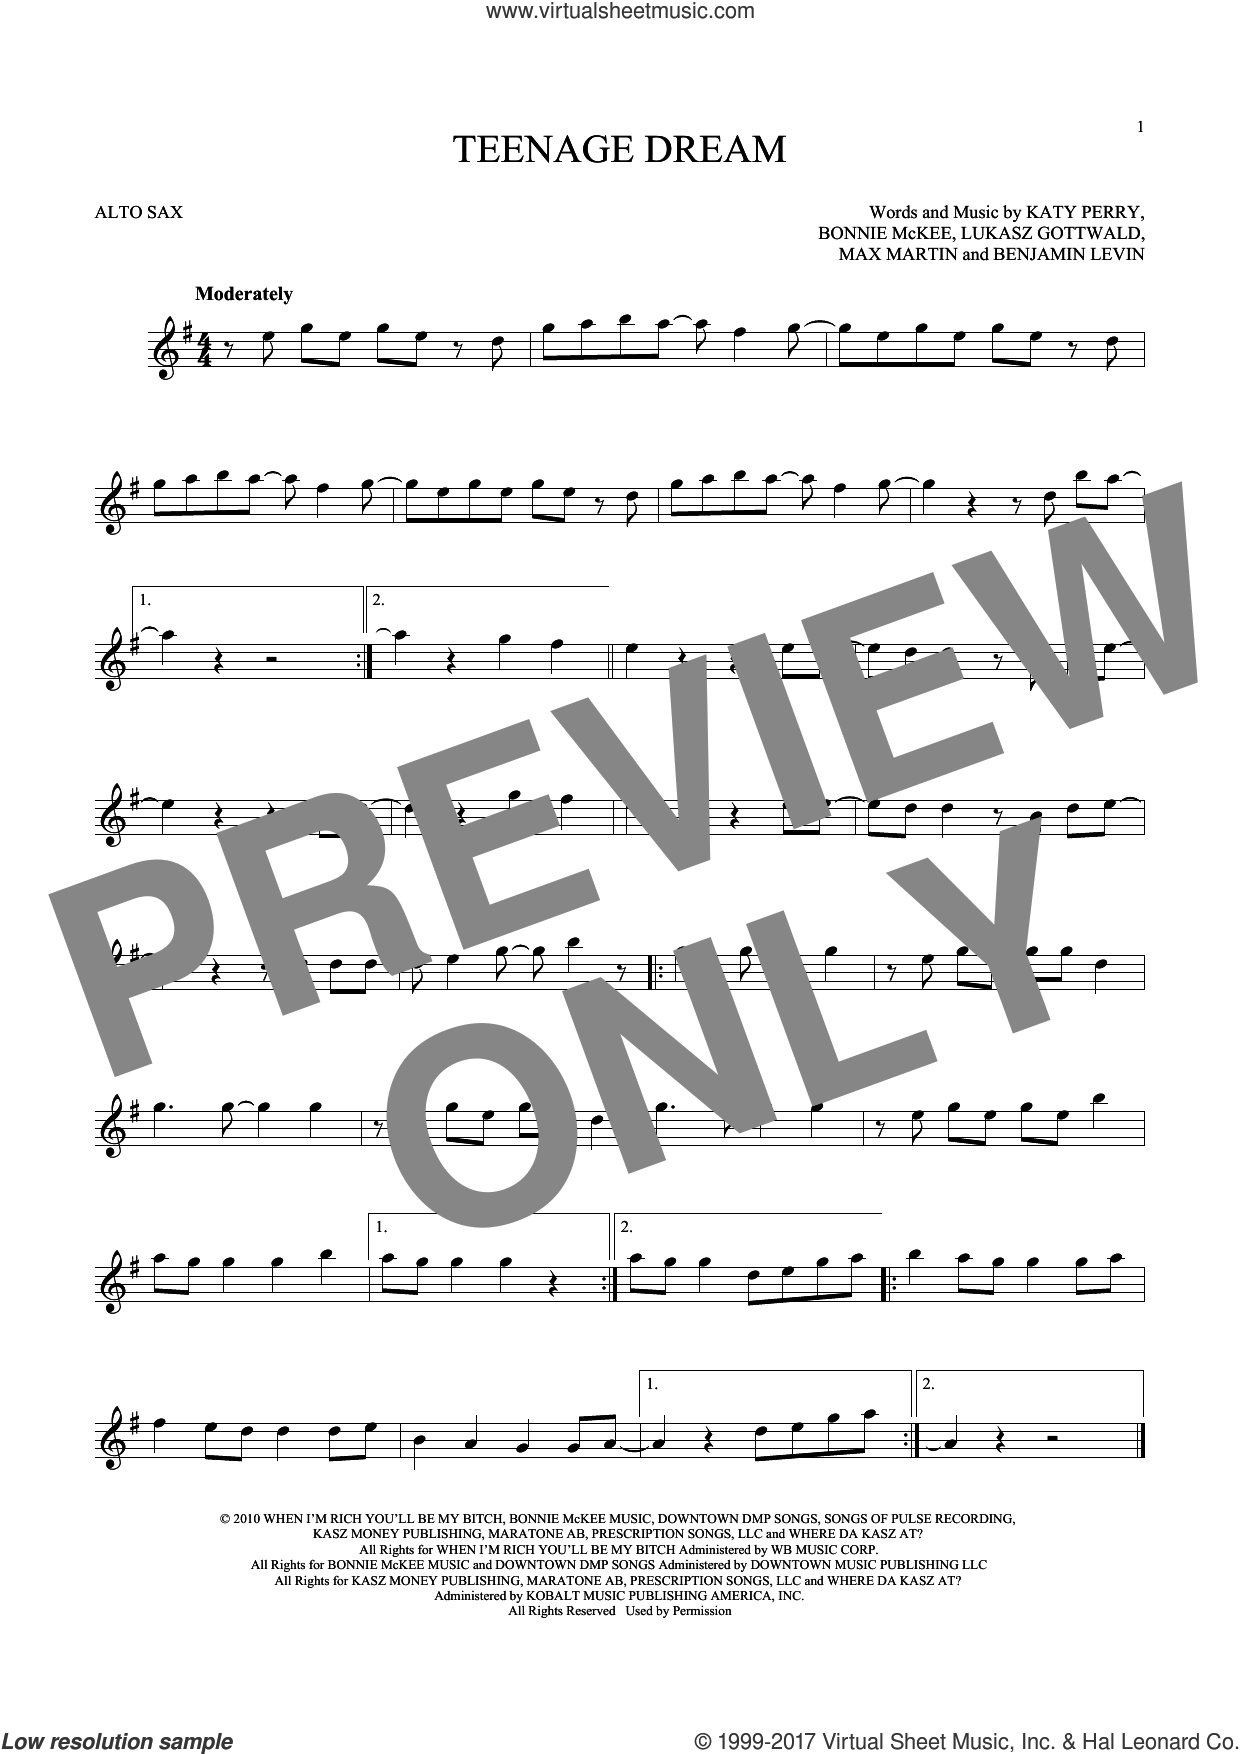 Teenage Dream sheet music for alto saxophone solo ( Sax) by Max Martin, Benjamin Levin, Bonnie McKee, Katy Perry and Lukasz Gottwald. Score Image Preview.